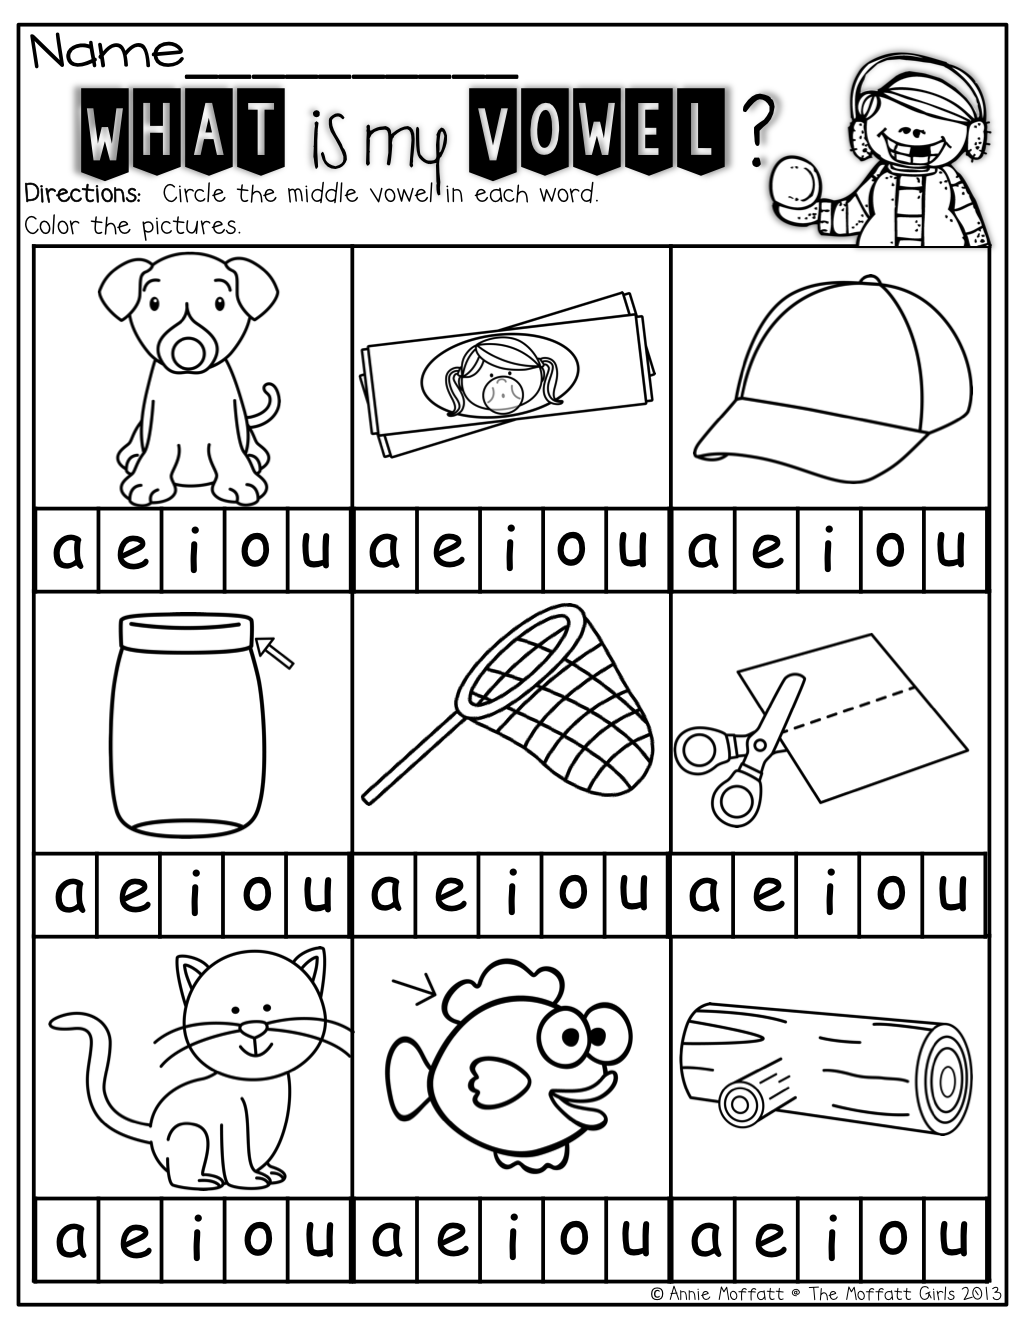 Middle Vowels A Great Way For Kids To Isolate Sounds And Help Them Find The Vowel In A Cvc Word